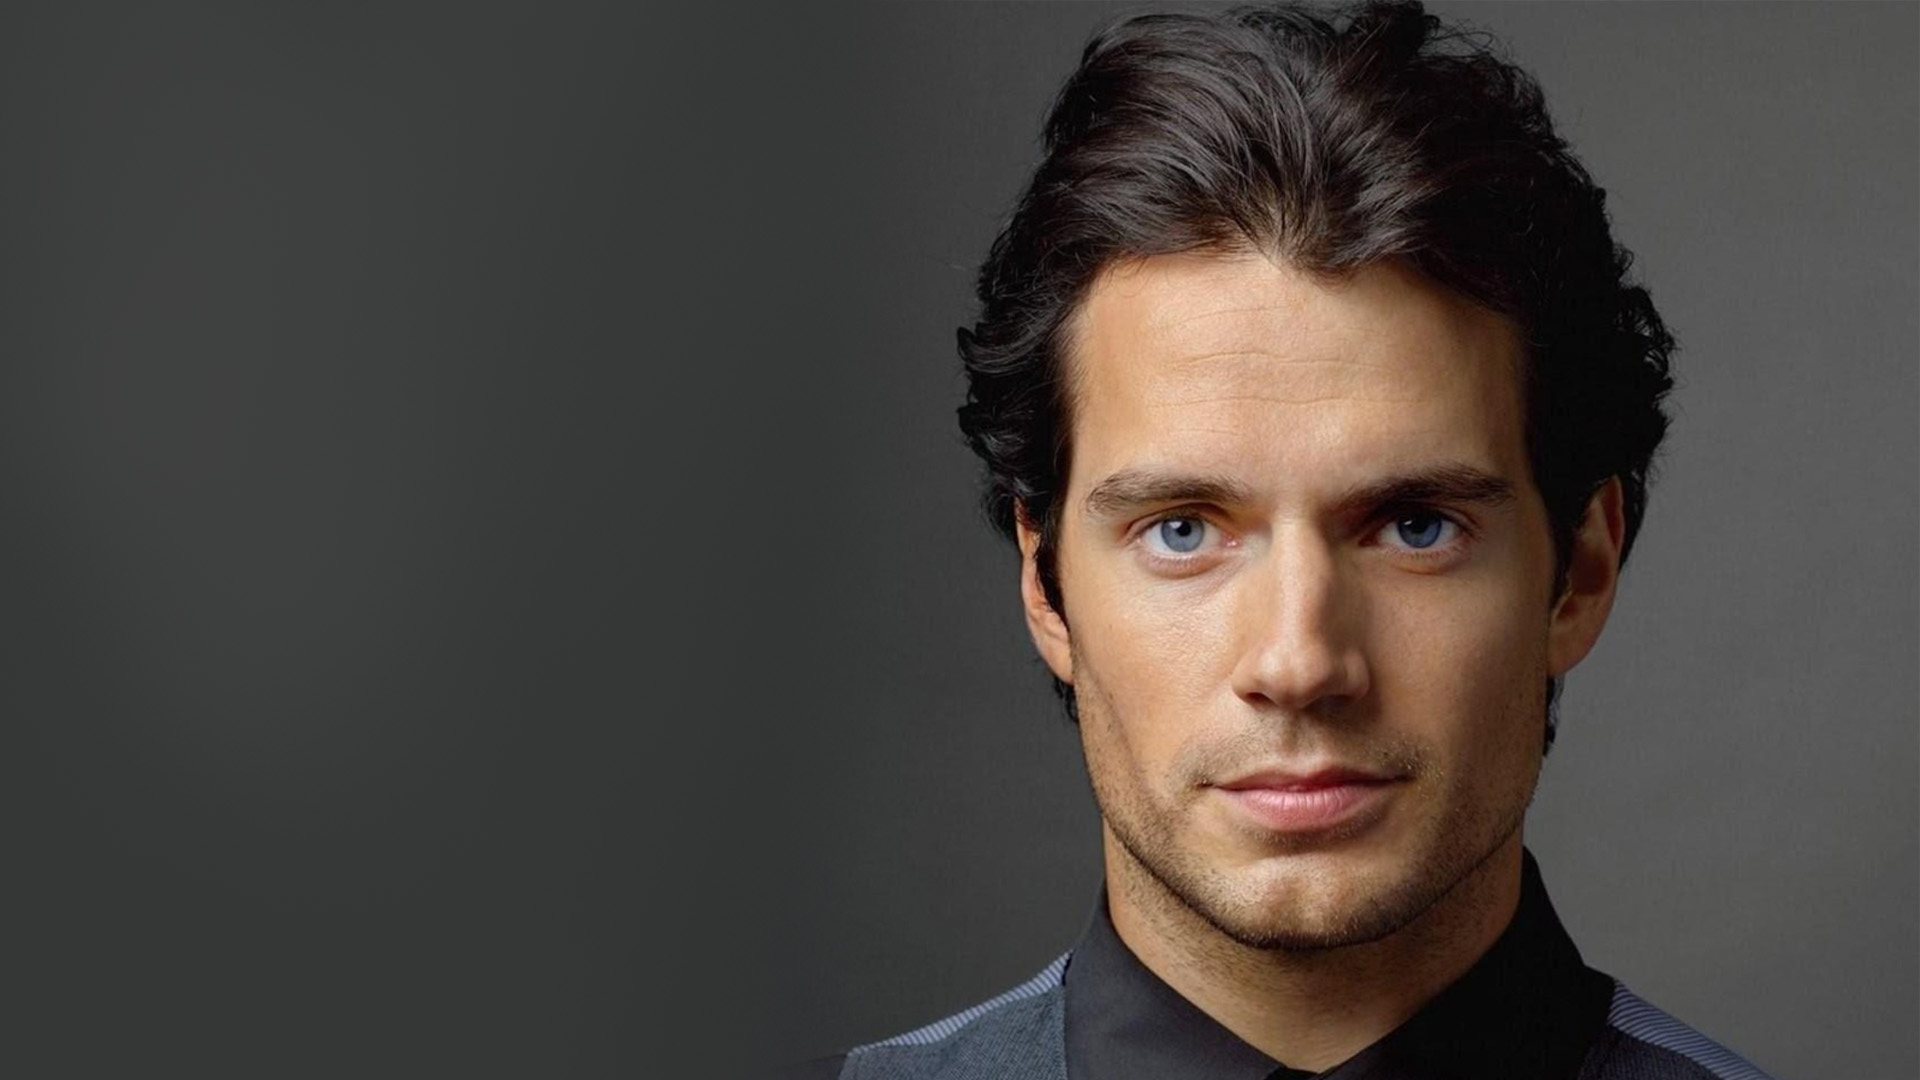 HQ Henry Cavill Wallpapers | File 195.75Kb